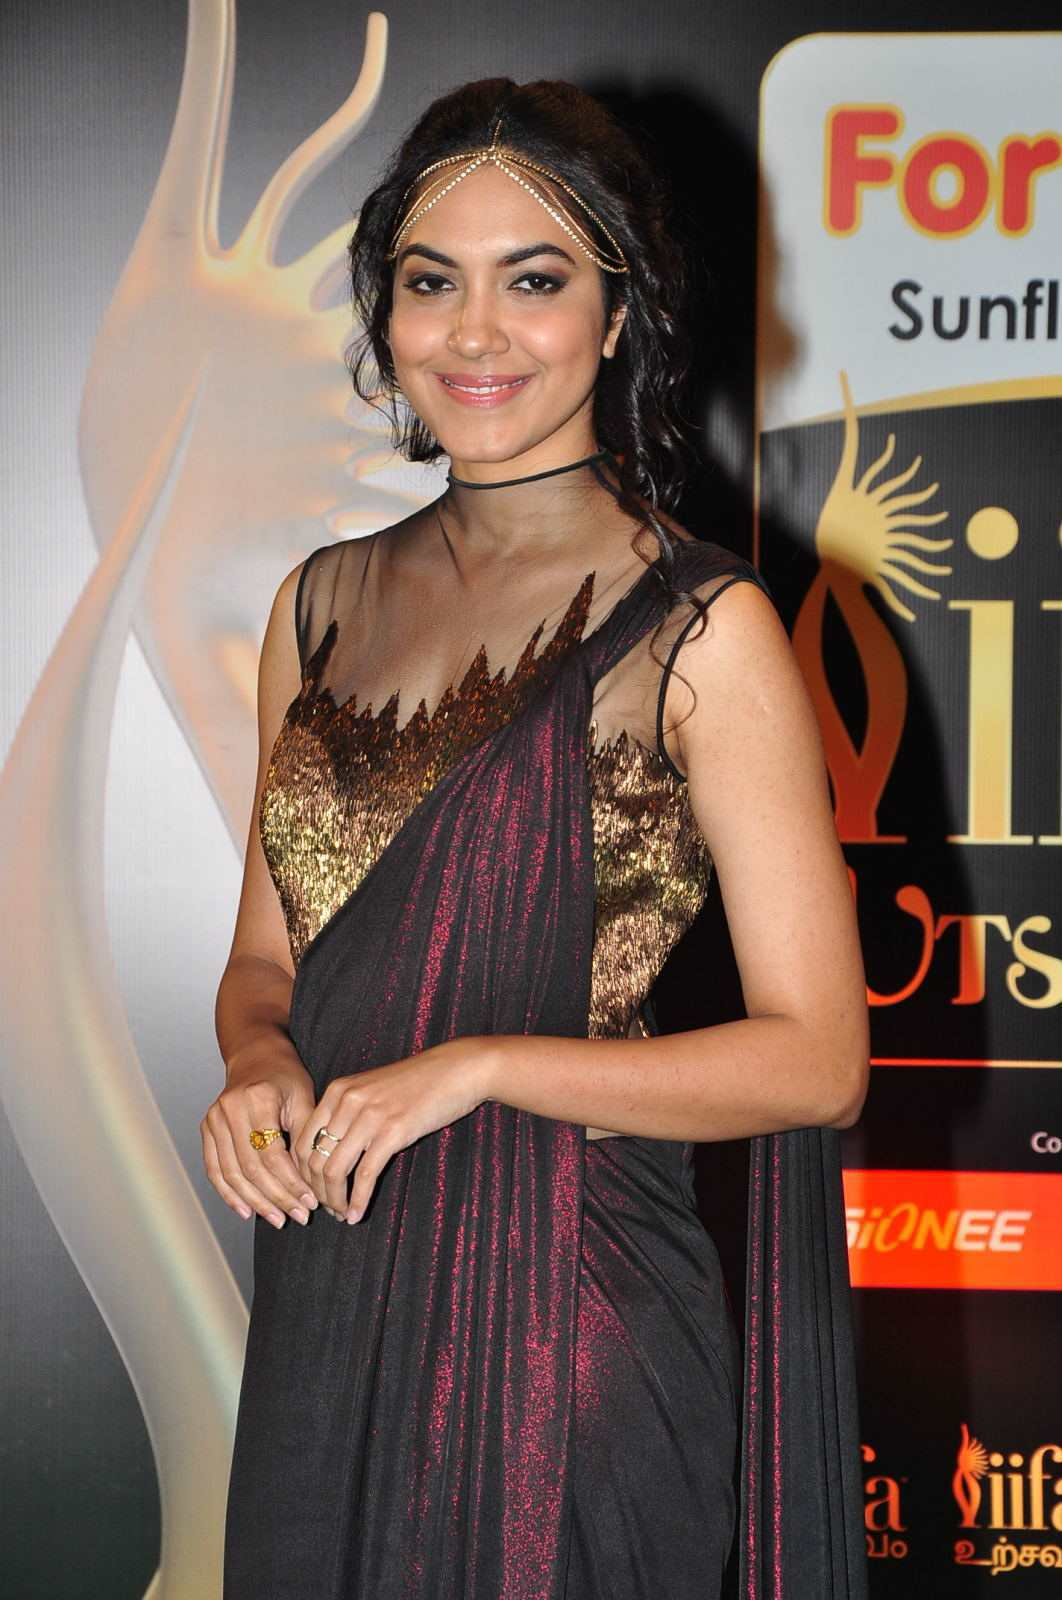 Actress Ritu Varma At IIFA Awards In Maroon Dress